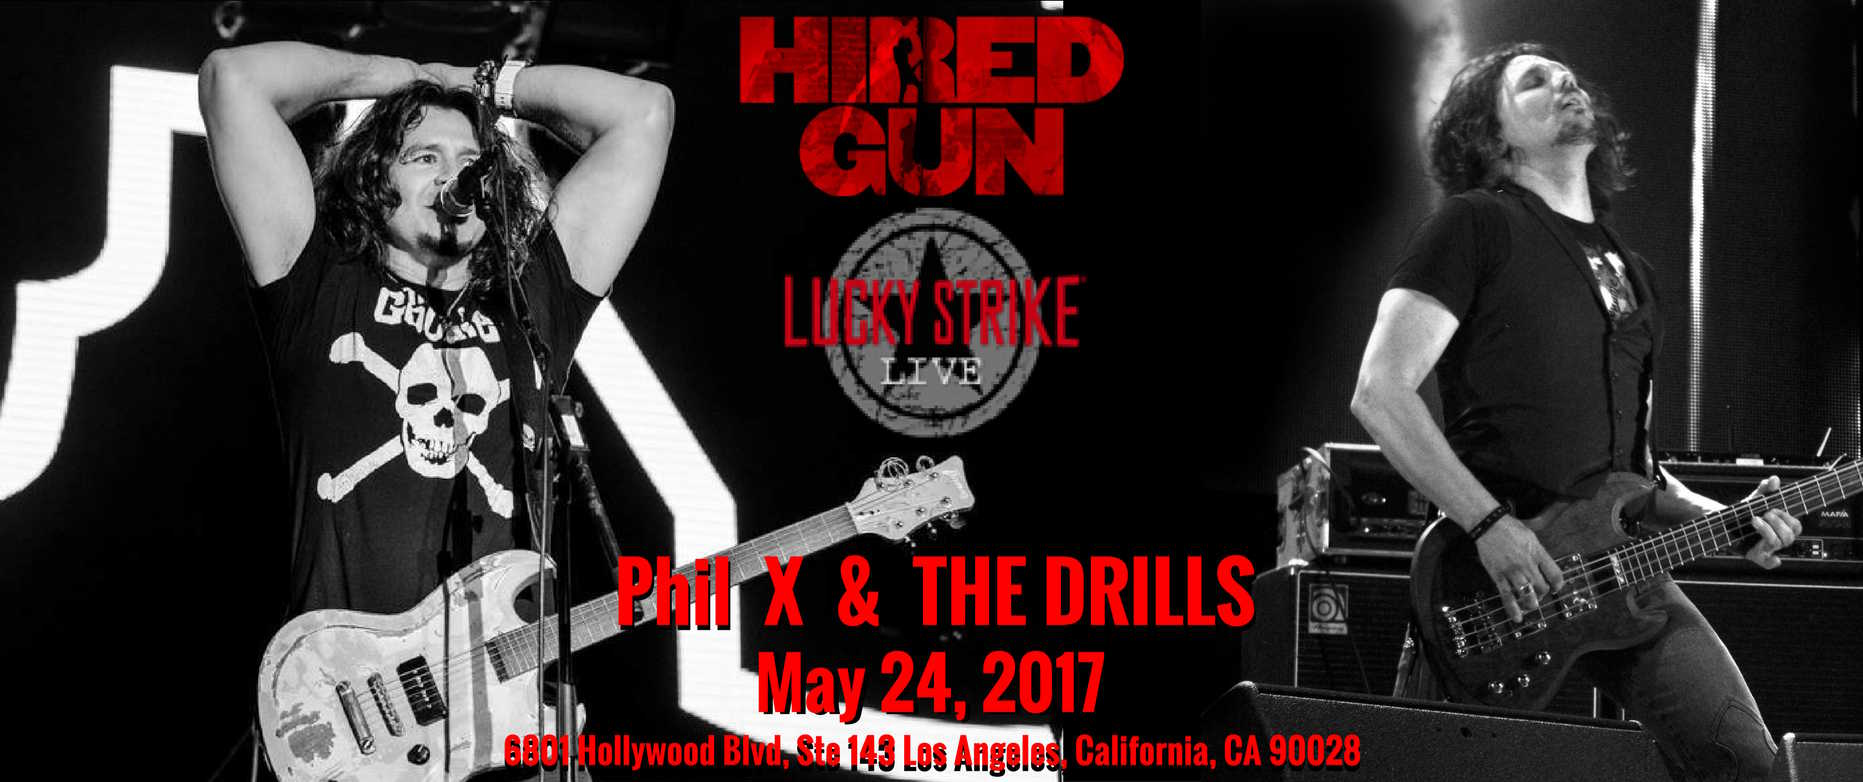 The DRILLS @ Lucky Strike Live